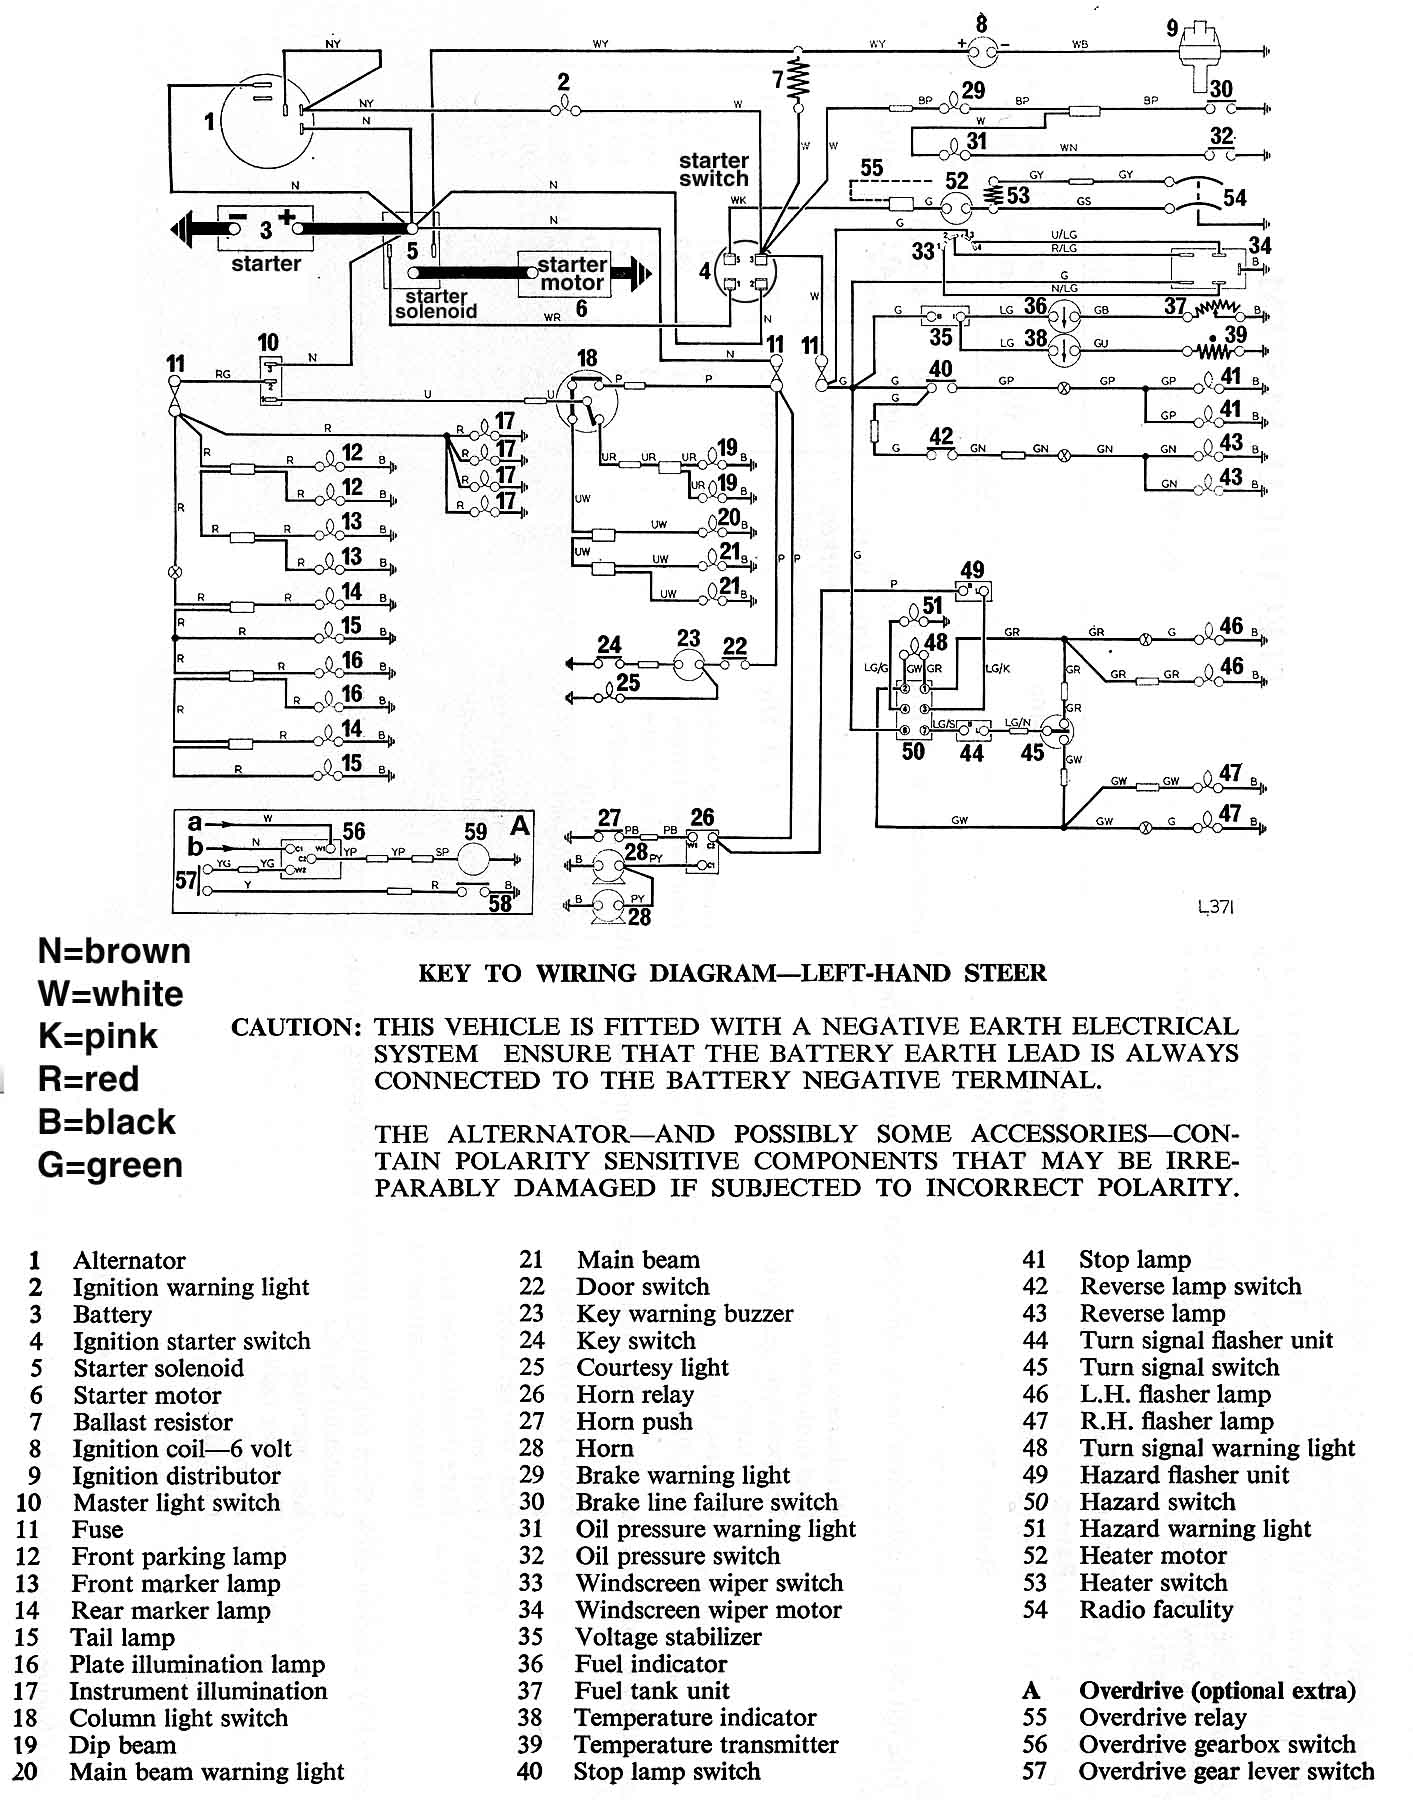 MKIVwire wiring schematics and diagrams triumph spitfire, gt6, herald 73 triumph spitfire 1500 wiring harness at sewacar.co